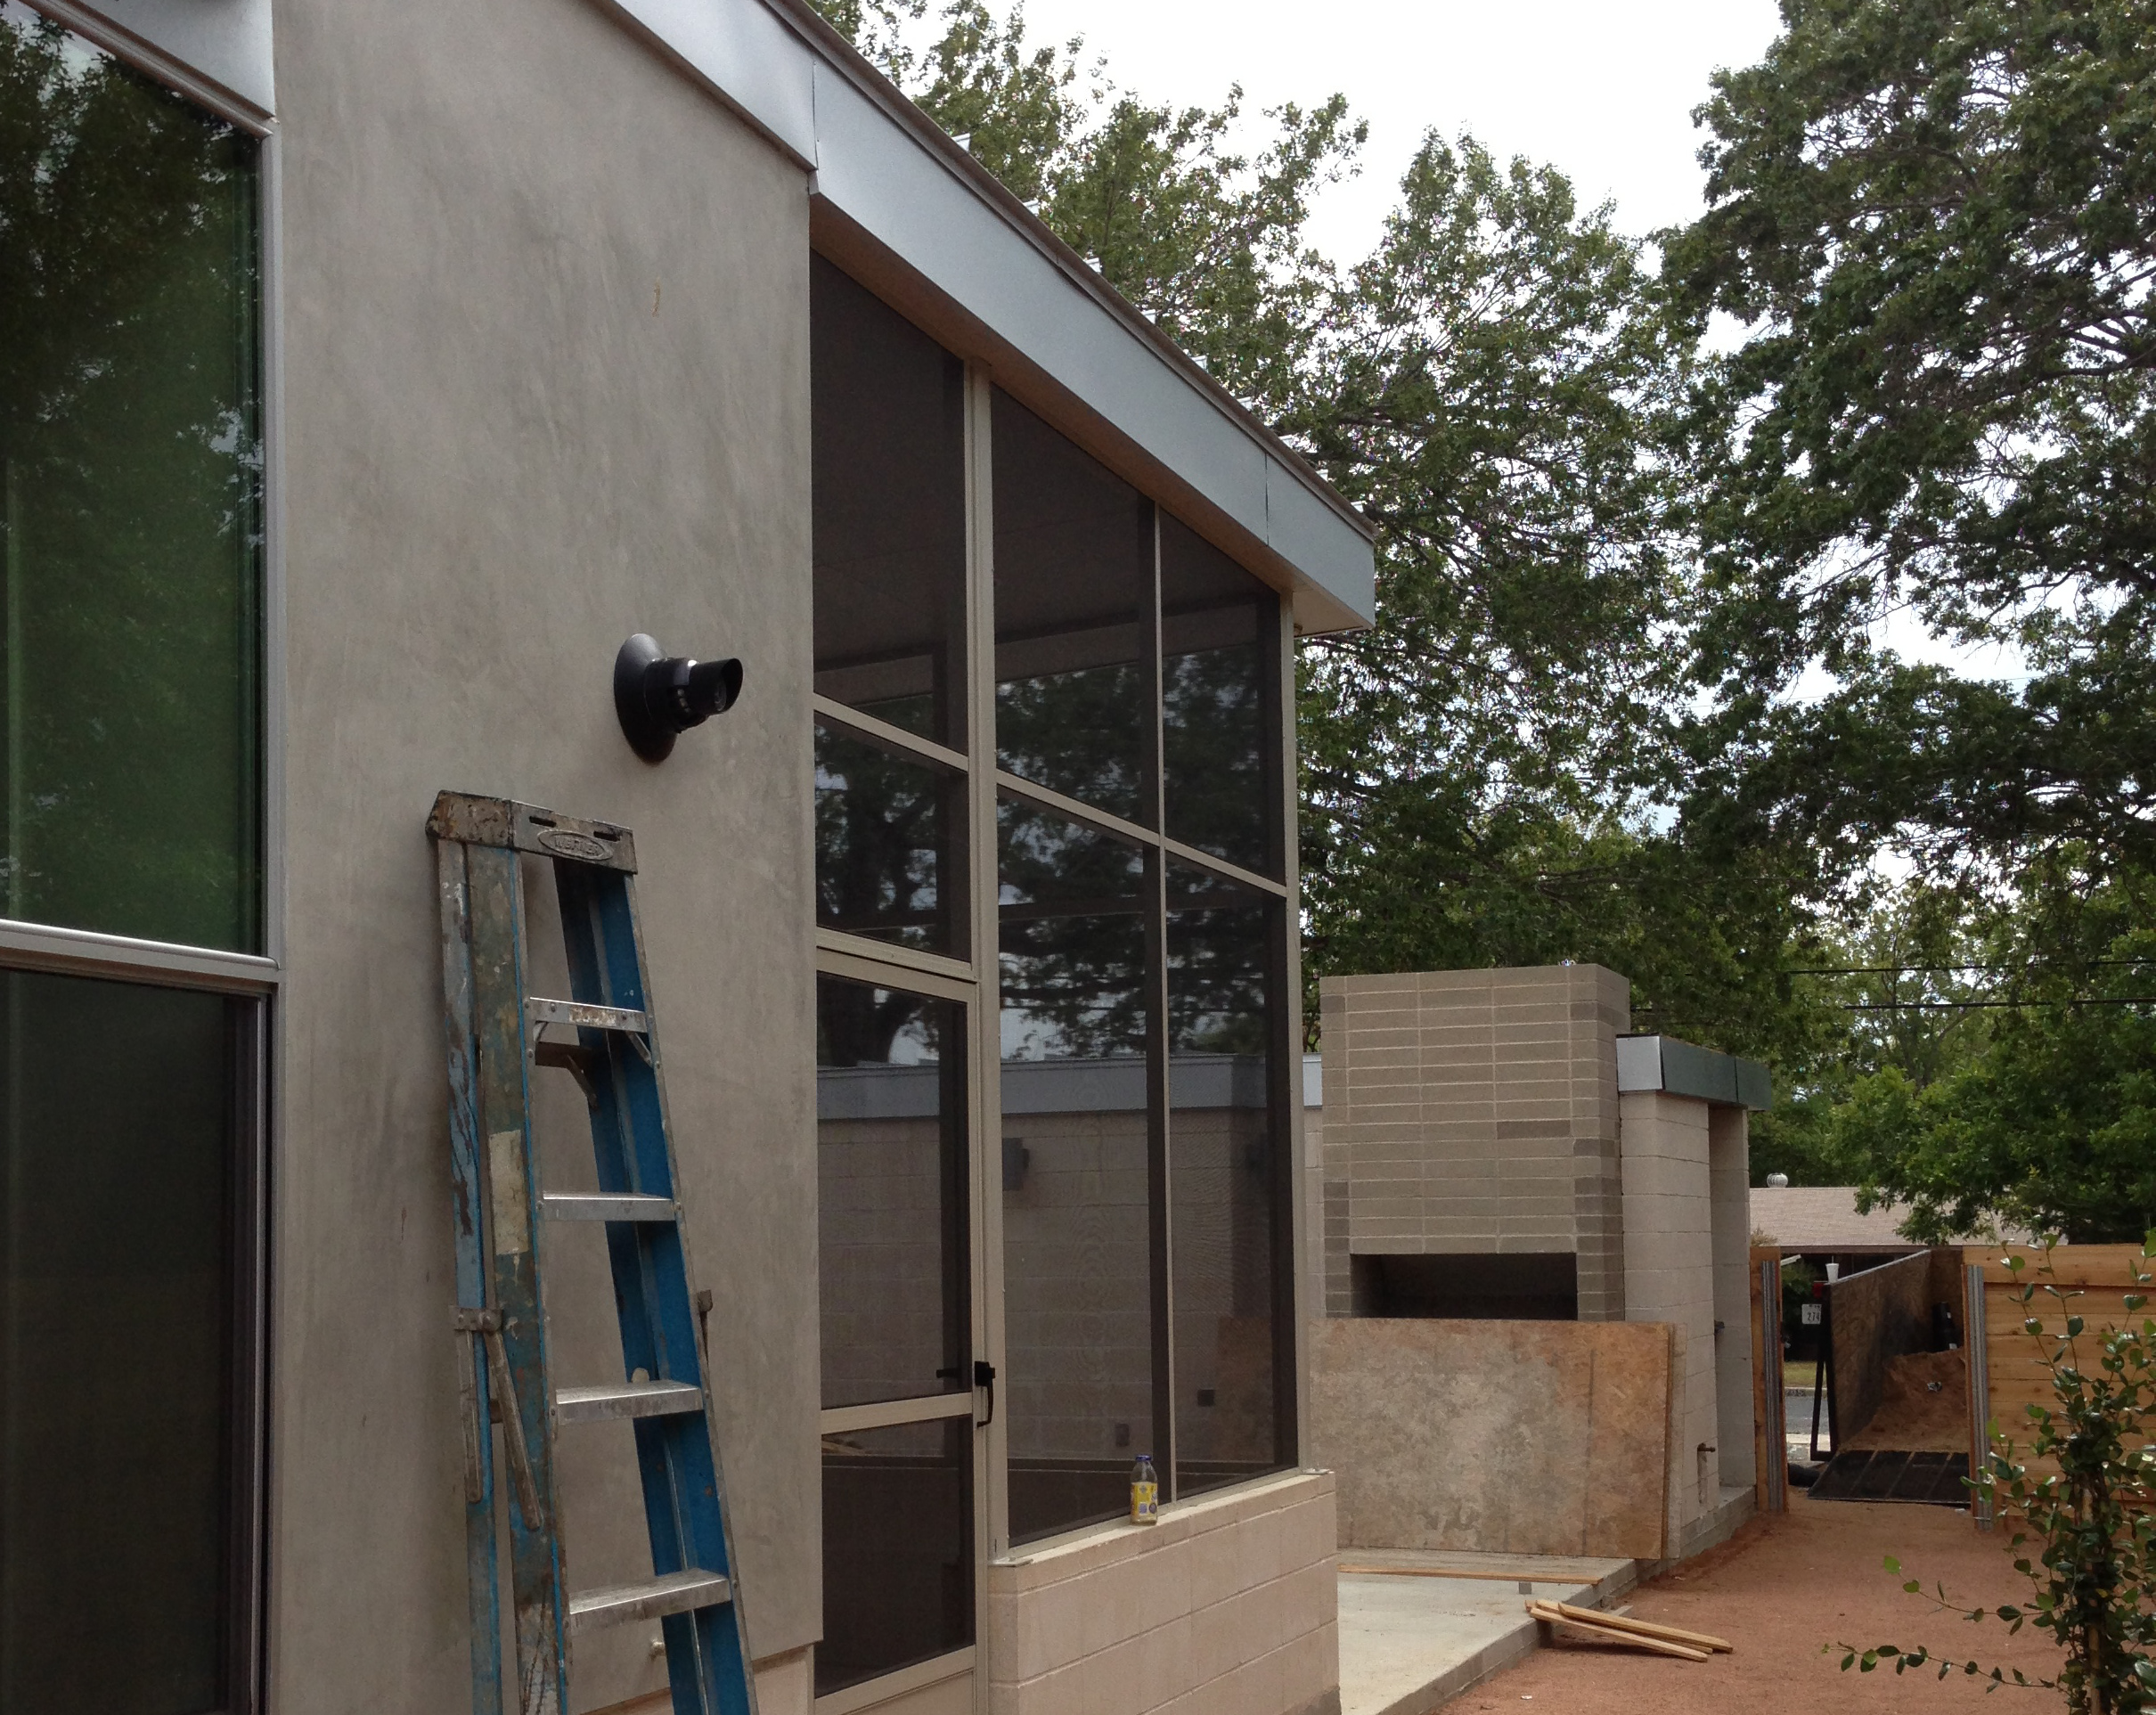 Solar Screens Patio Enclosure In Austin TX